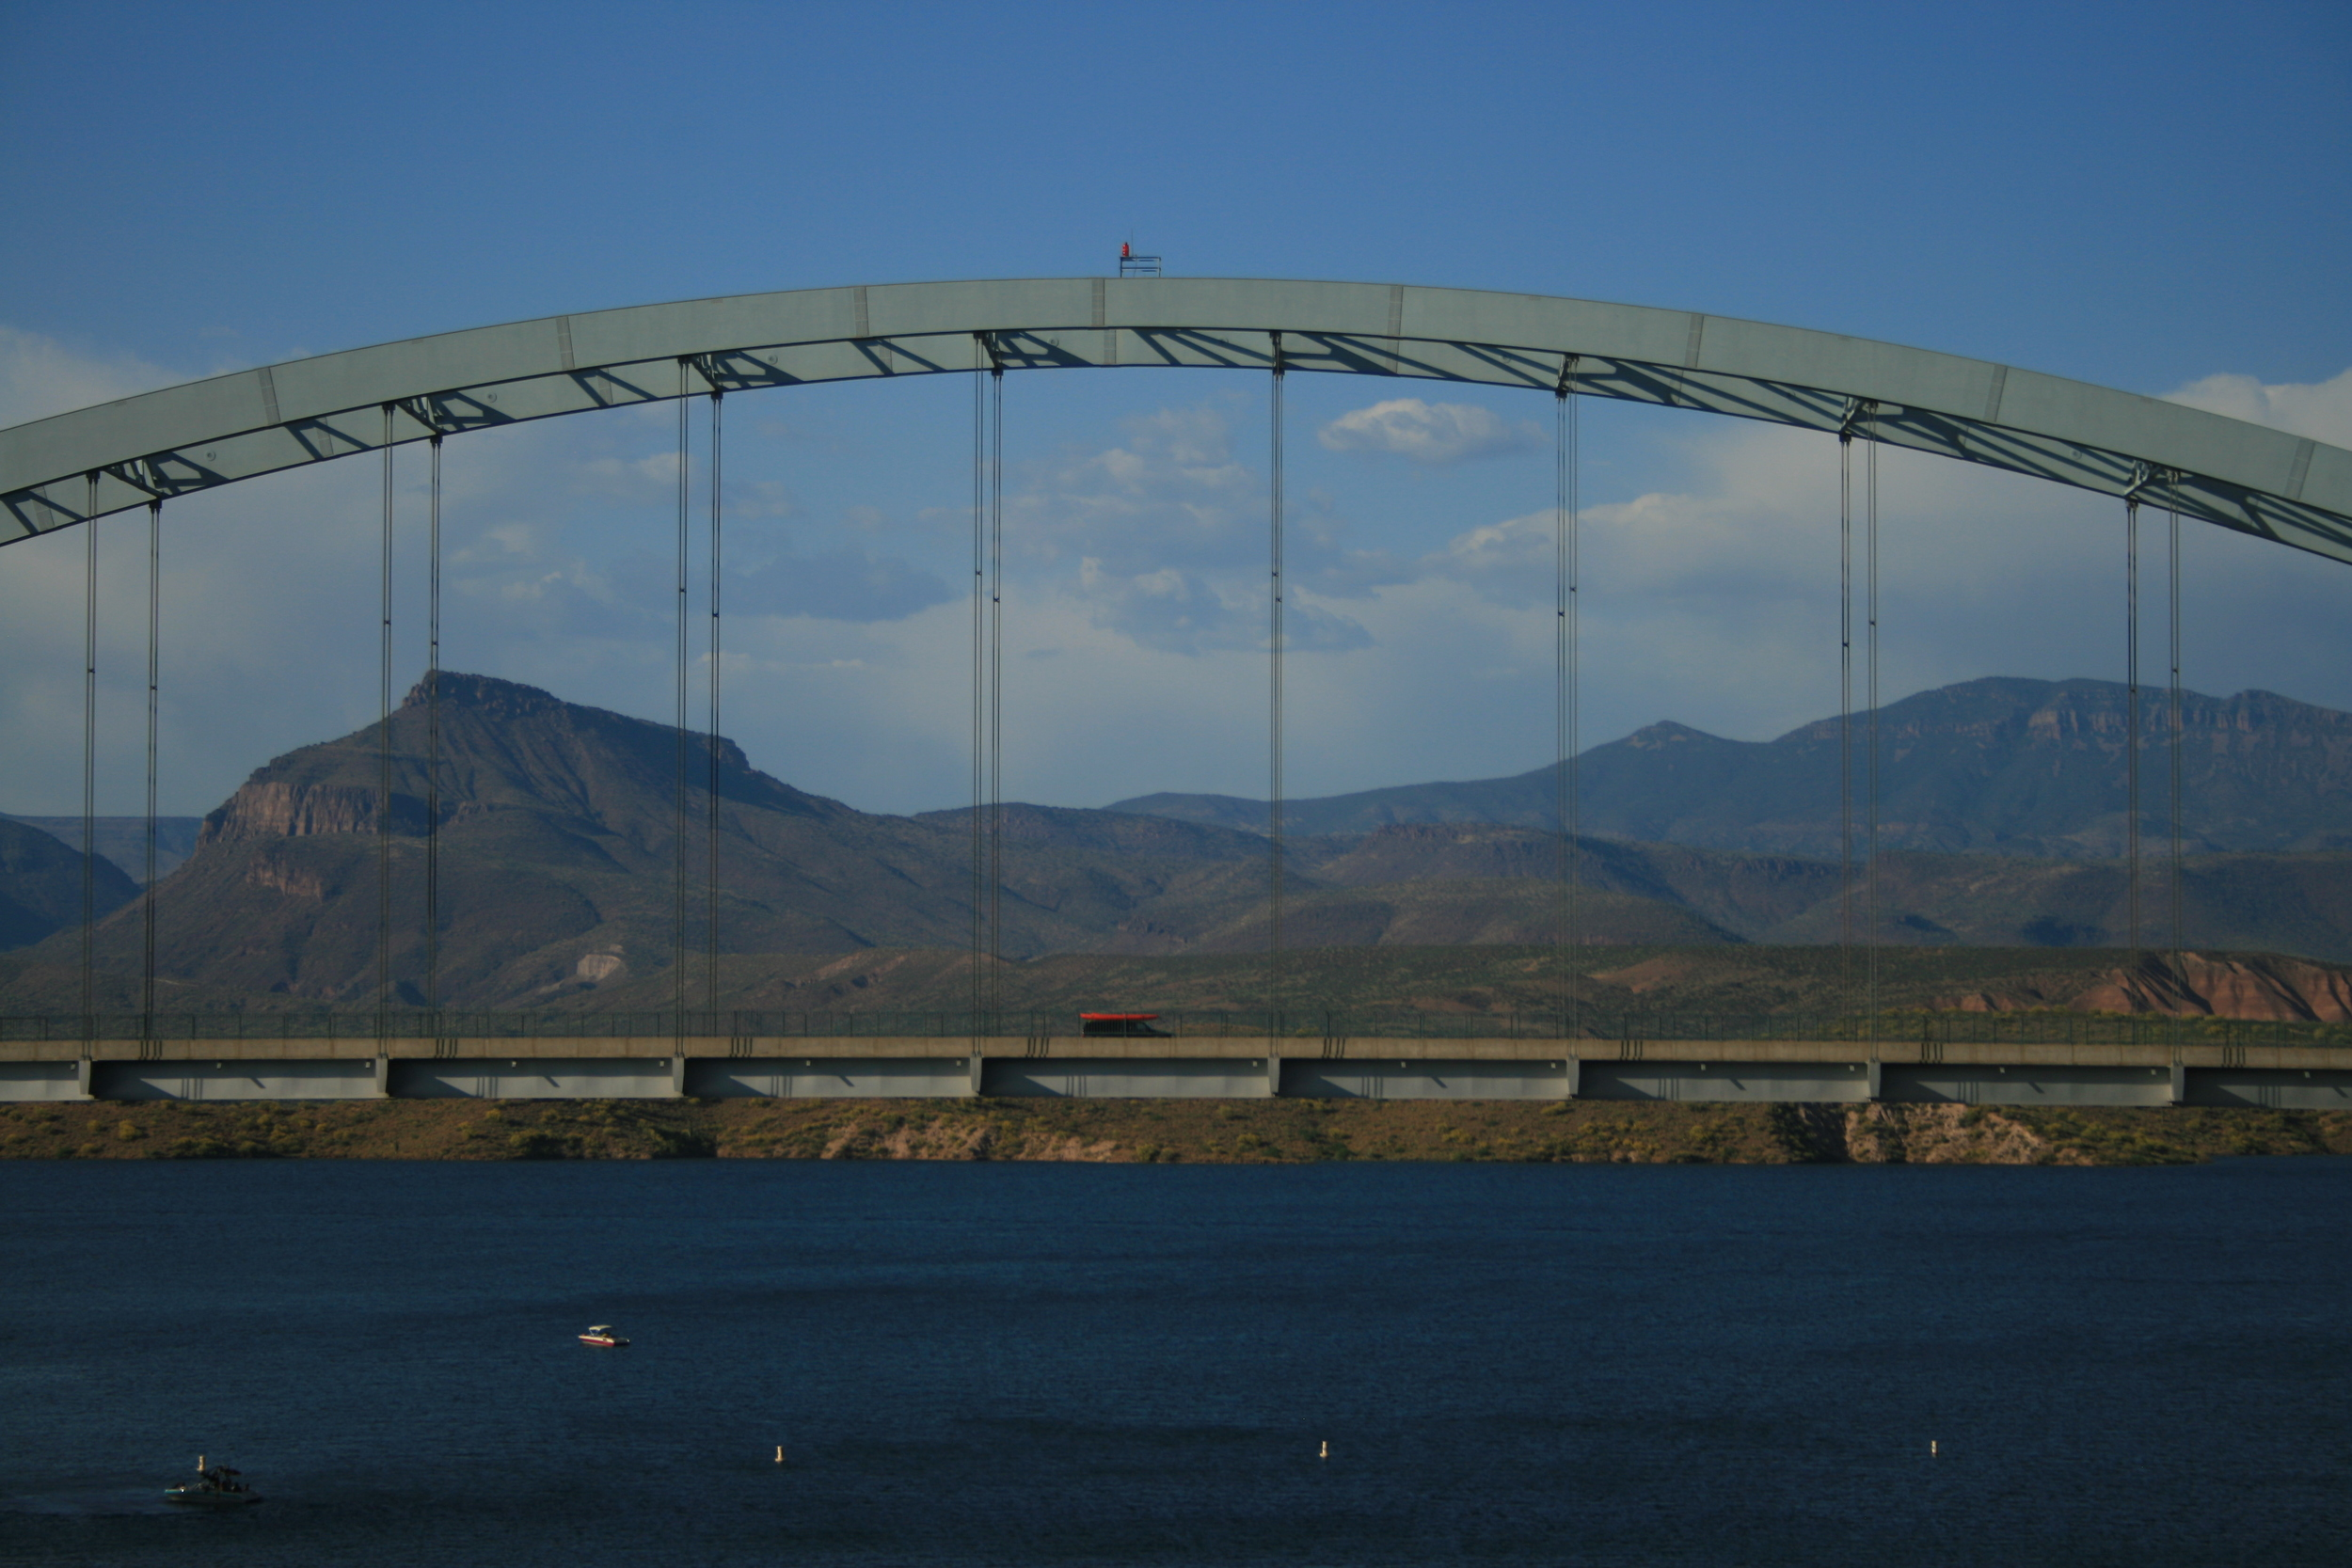 Roosevelt Lake Bridge, Gila County, Arizona. May, 2009. By Bobby Magill